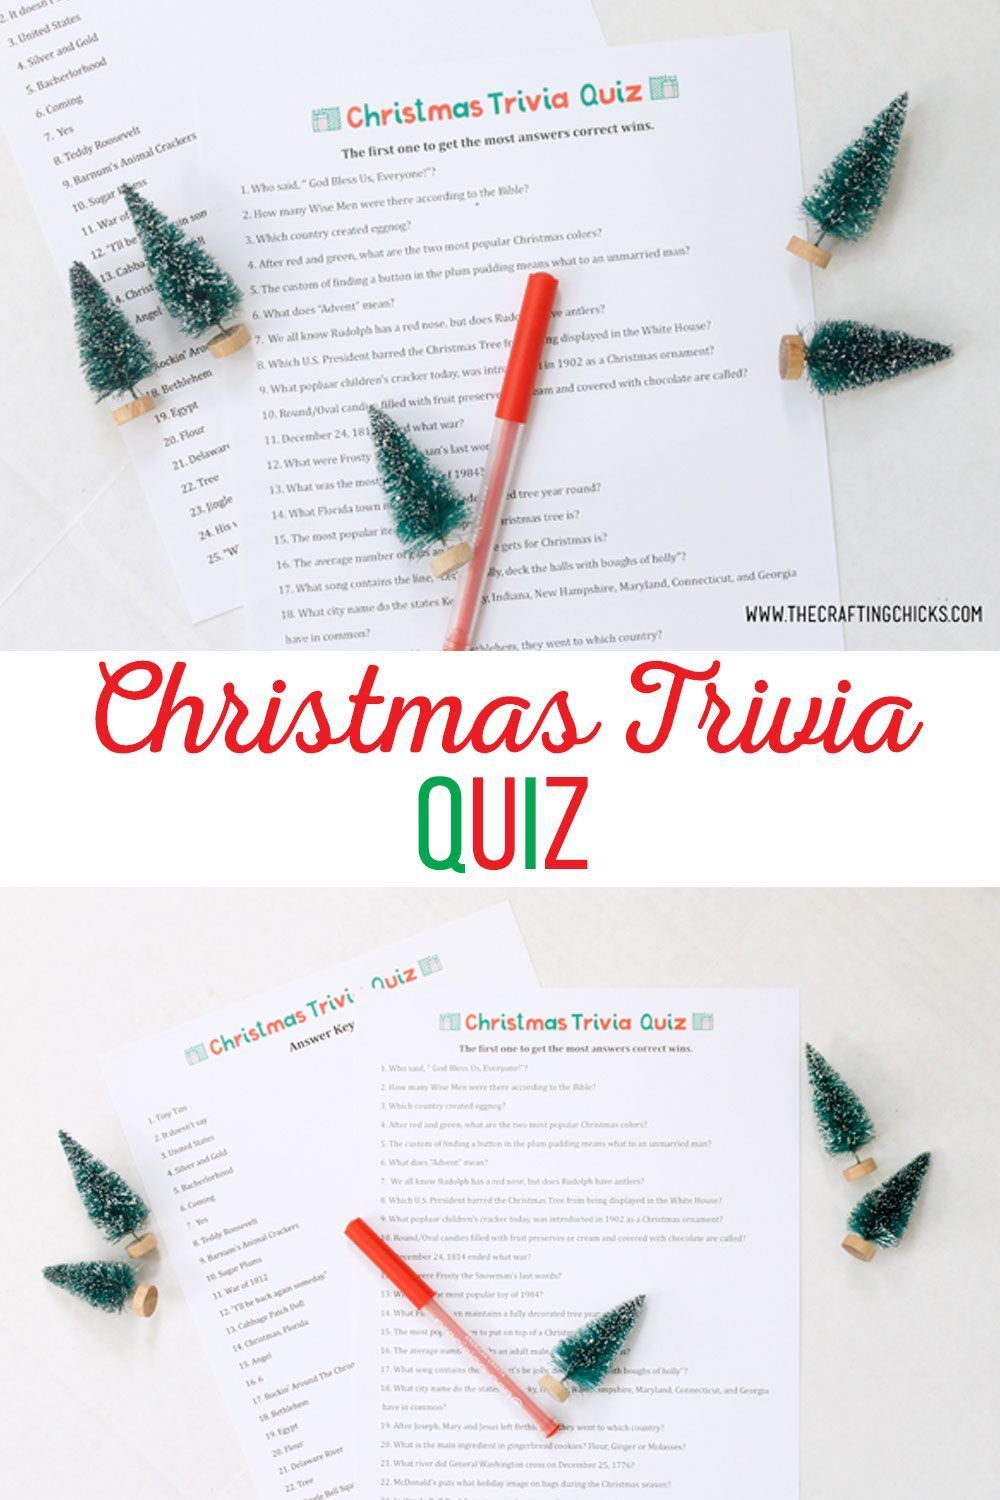 You can make your own Christmasthemed treasure hunt clue